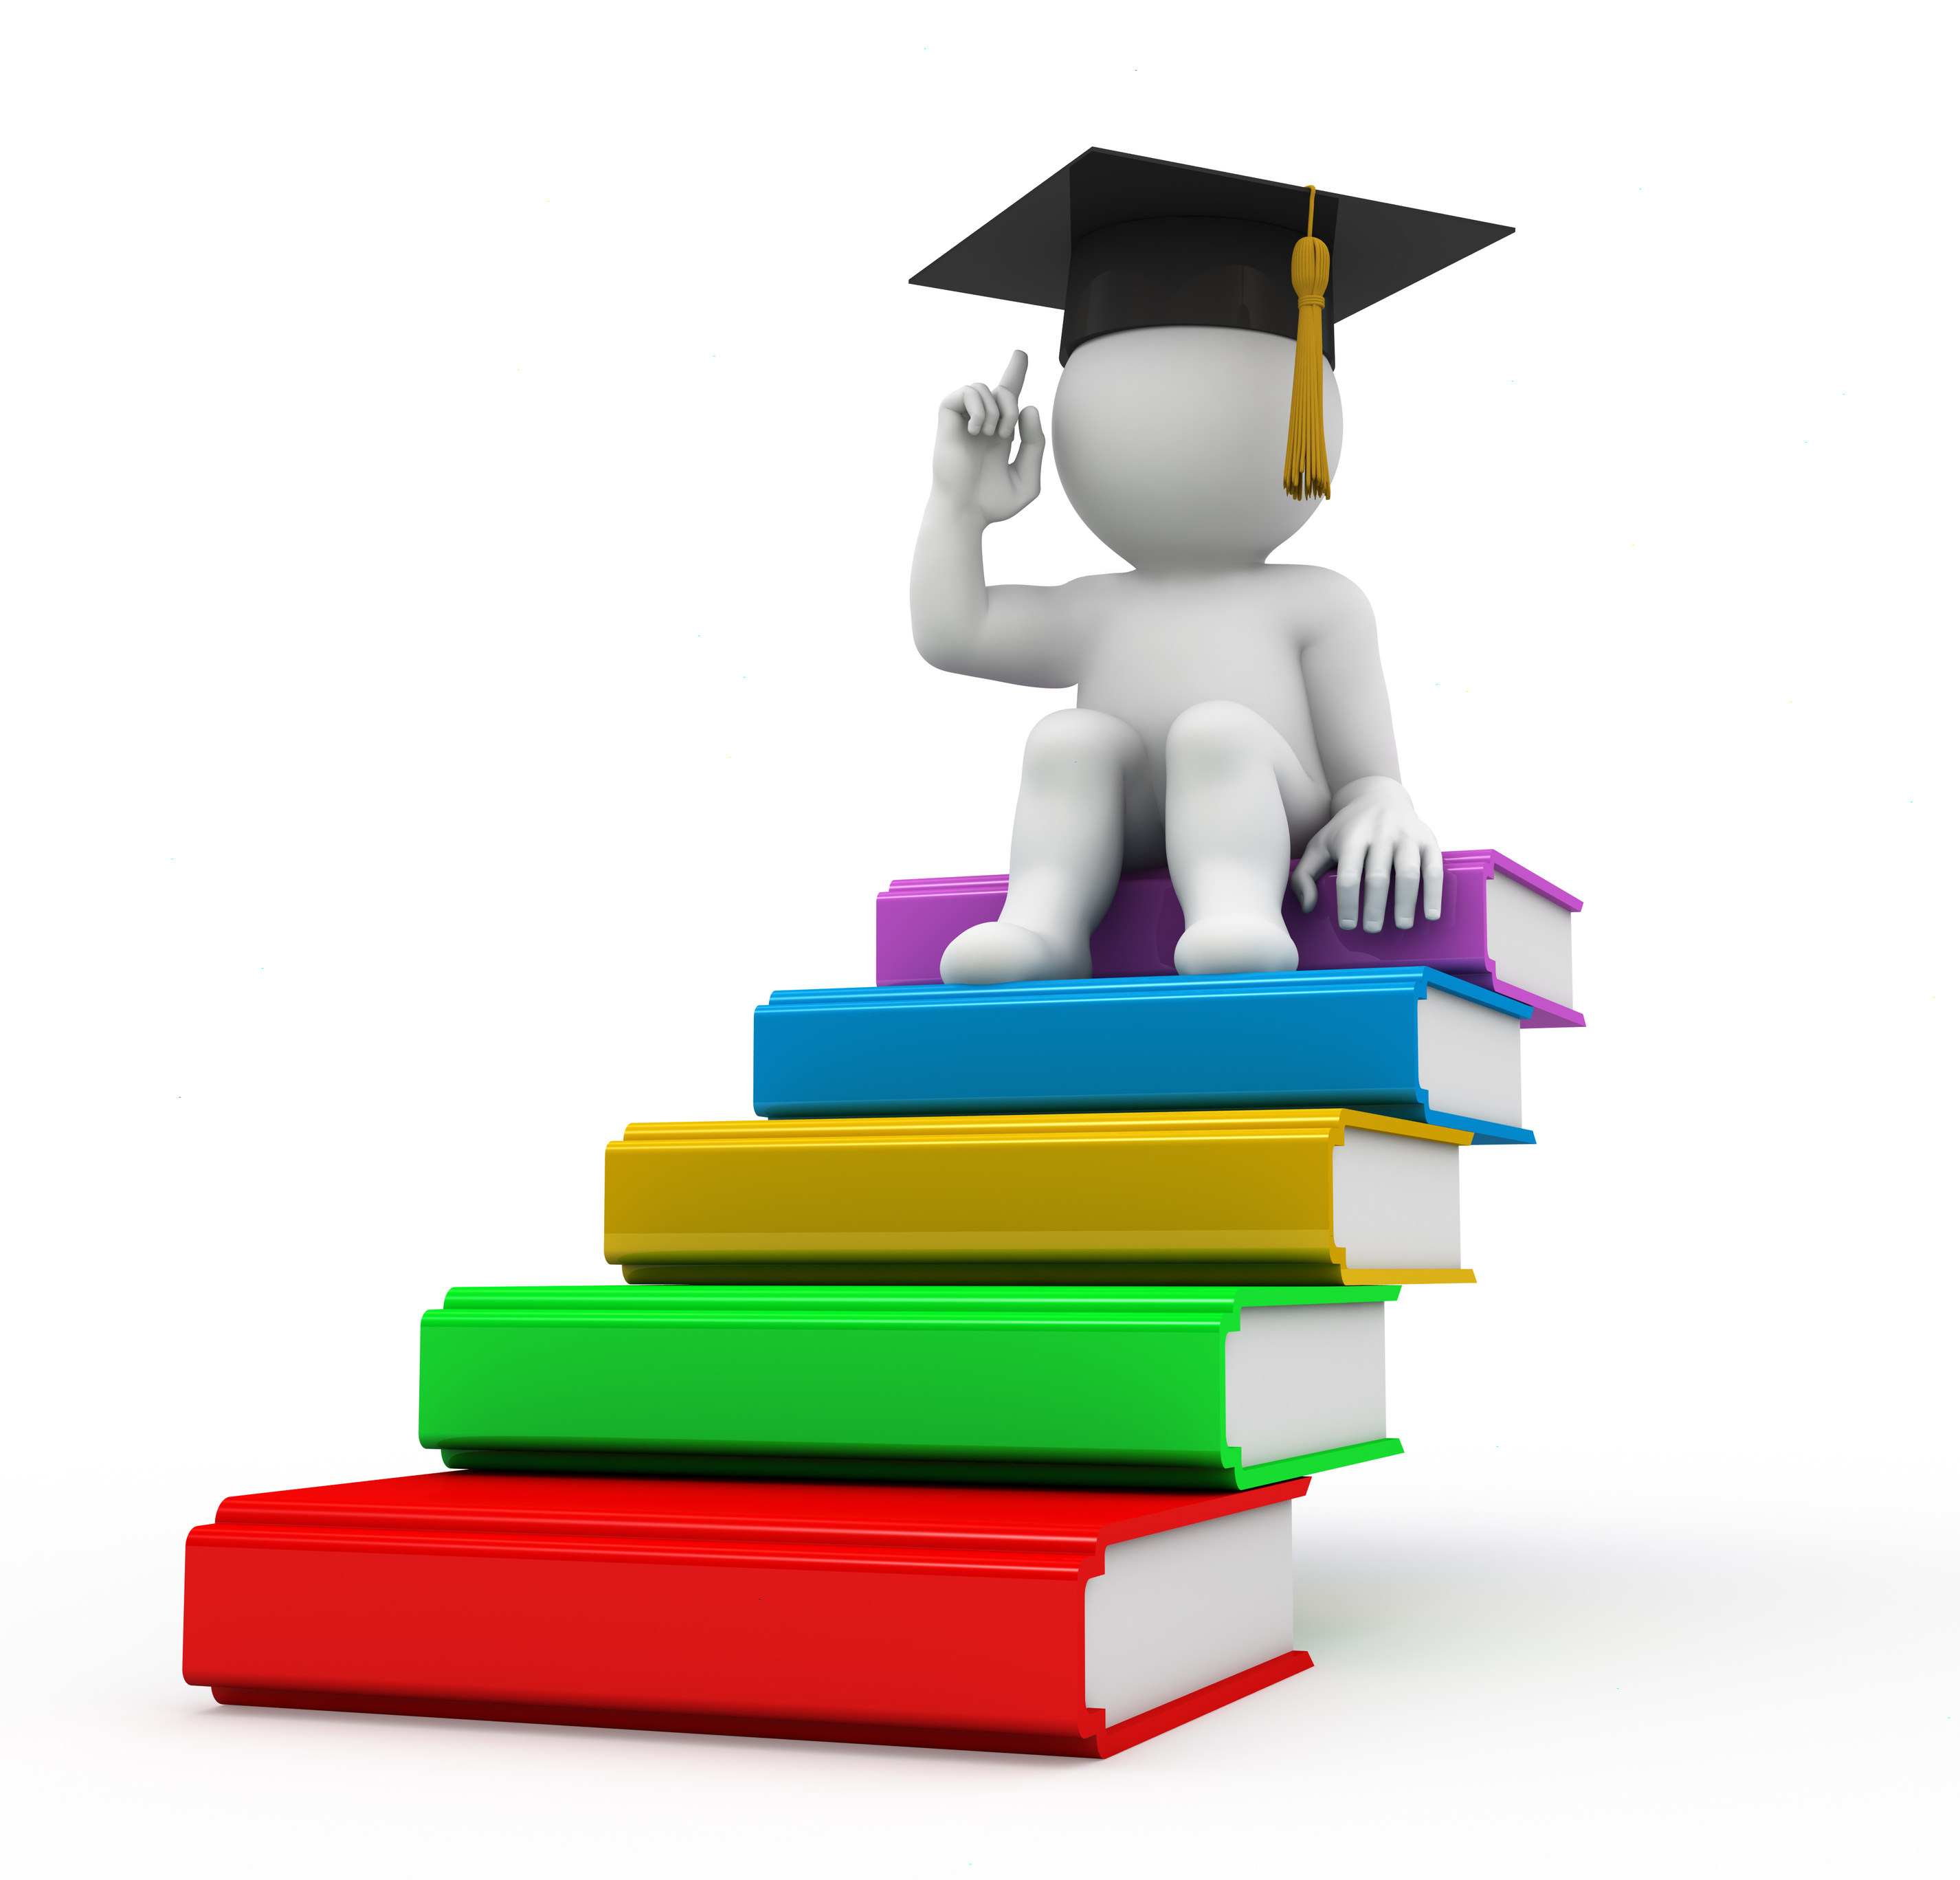 Dissertation response systems in education - Dissertation writing ...